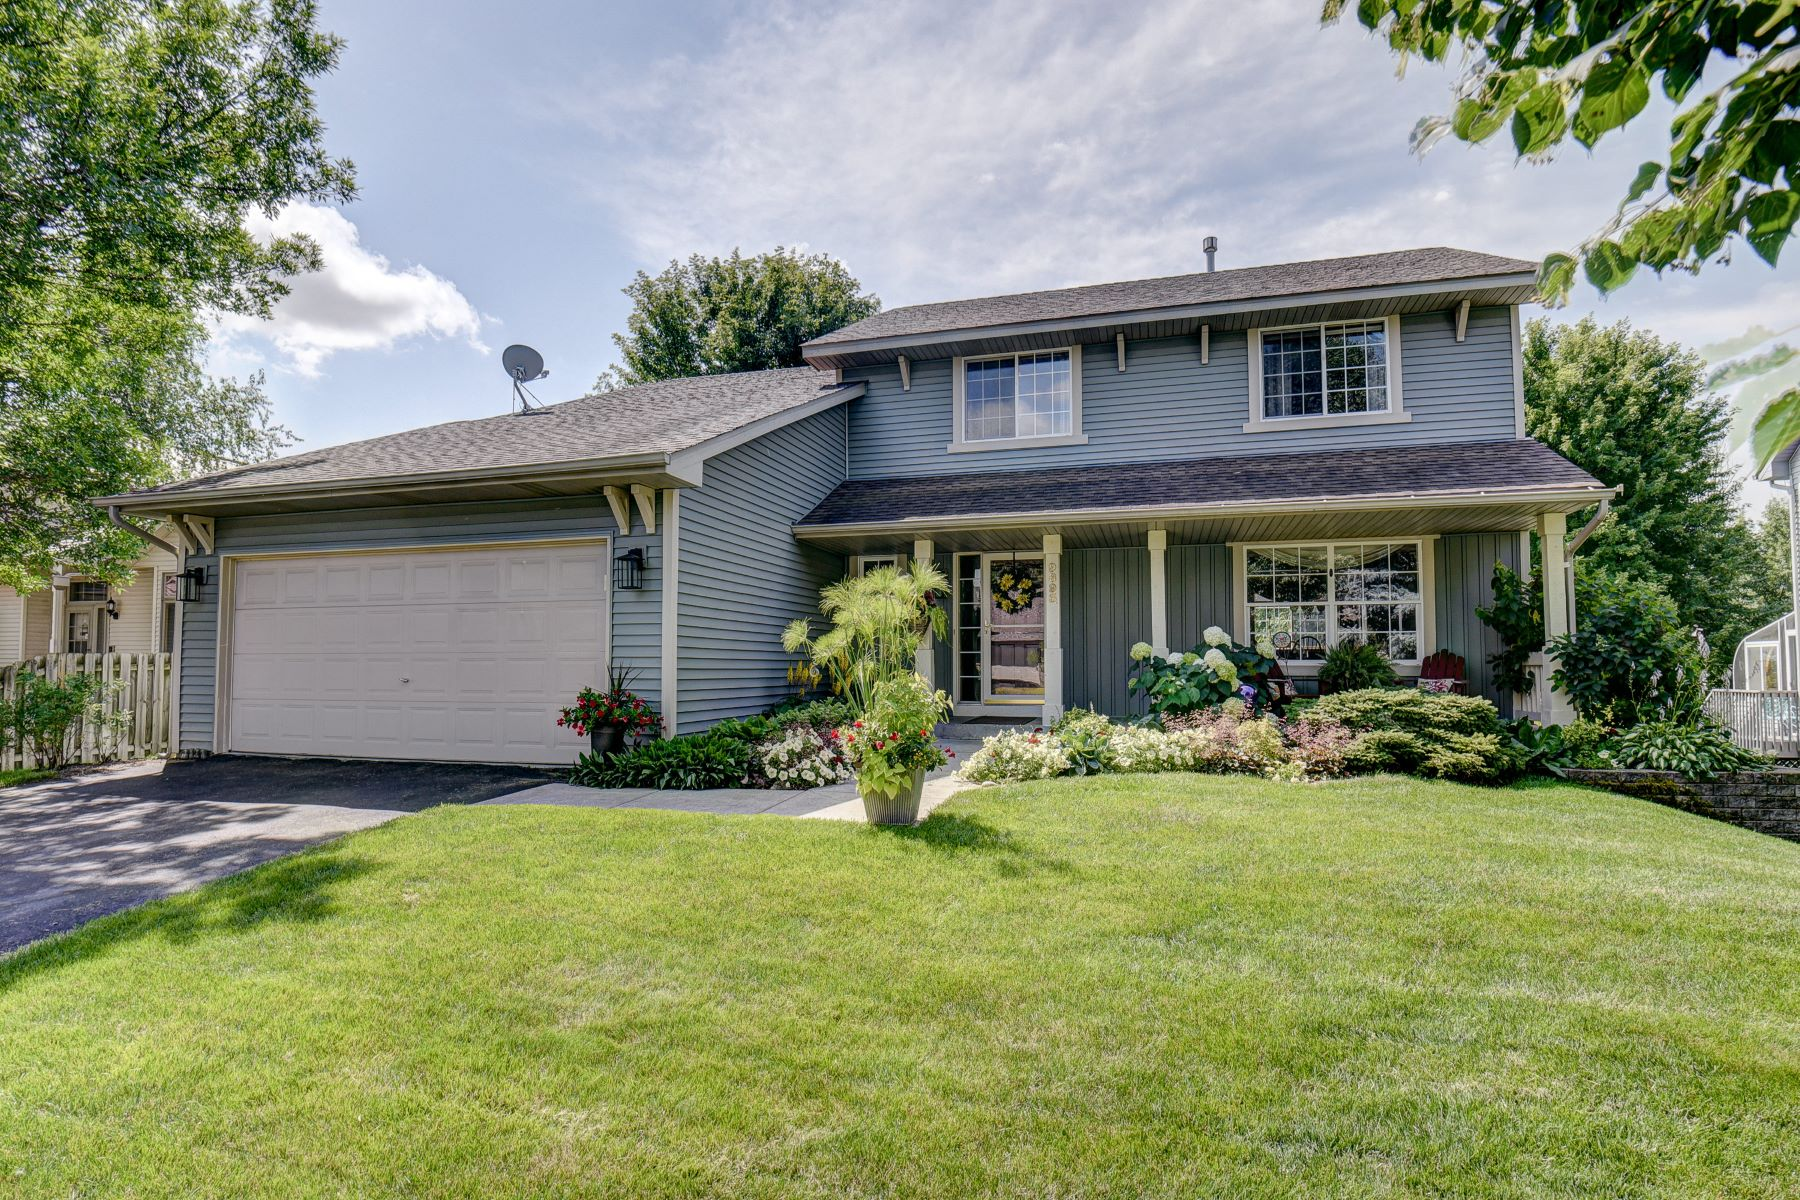 Single Family Homes for Sale at 9893 74th Street S Cottage Grove, Minnesota 55016 United States